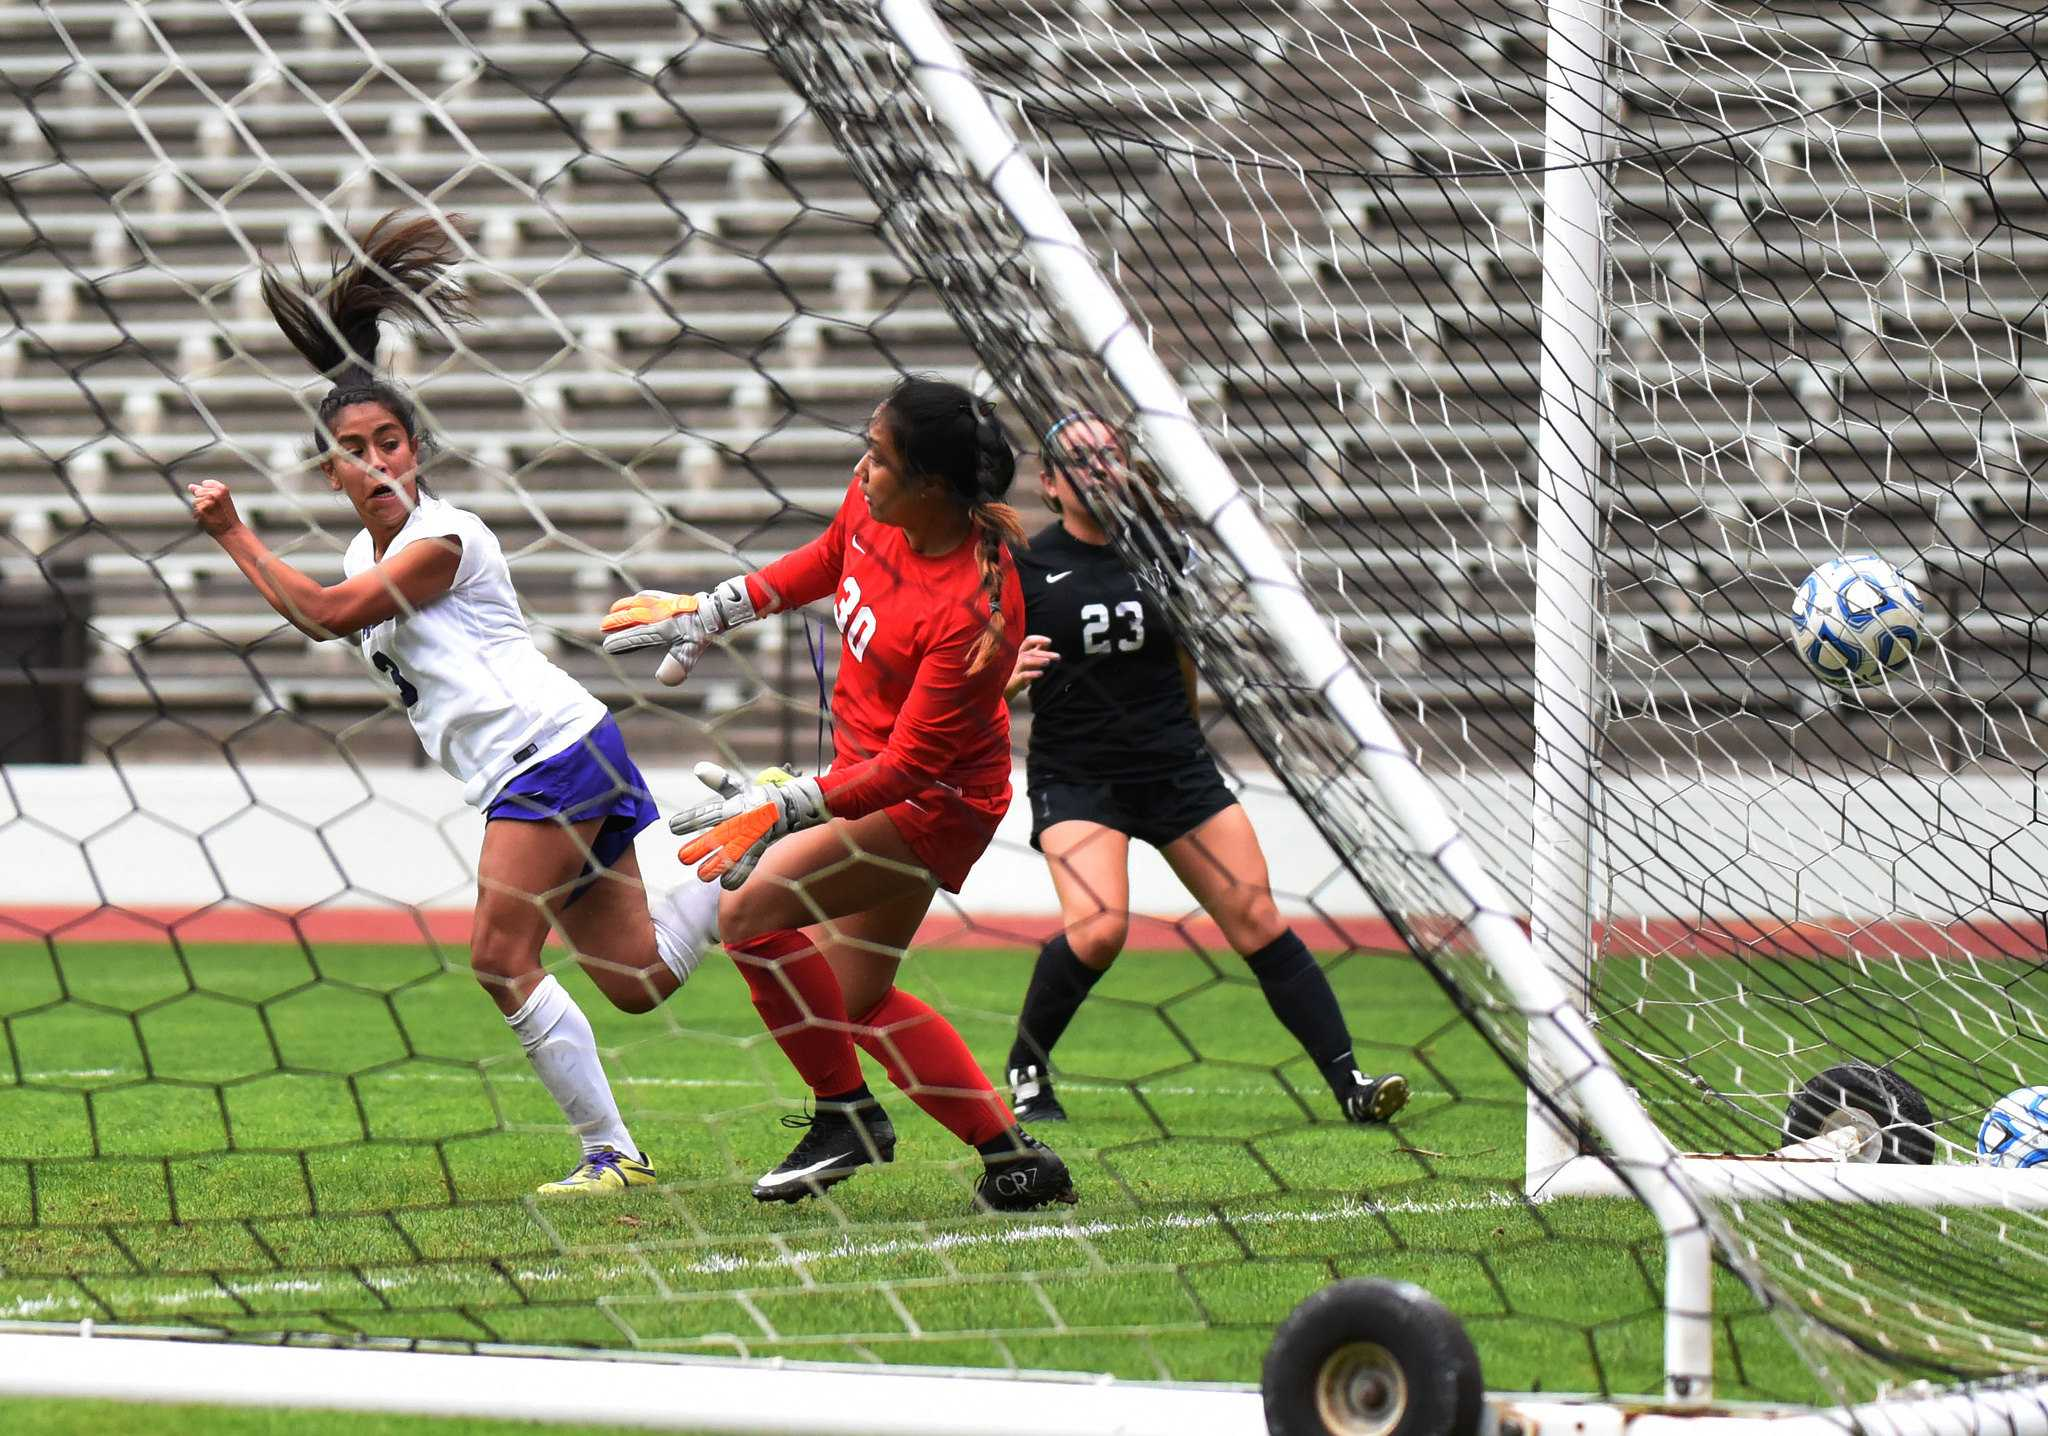 Danielle Vidal (3), midfielder for SF State Gators, heads the ball to score the first goal during the first half against Holy Names University Hawks at Cox Stadium at SF State Tuesday, Sep. 22. SF State Gators won 5-1. (Xpress / Qing Huang)